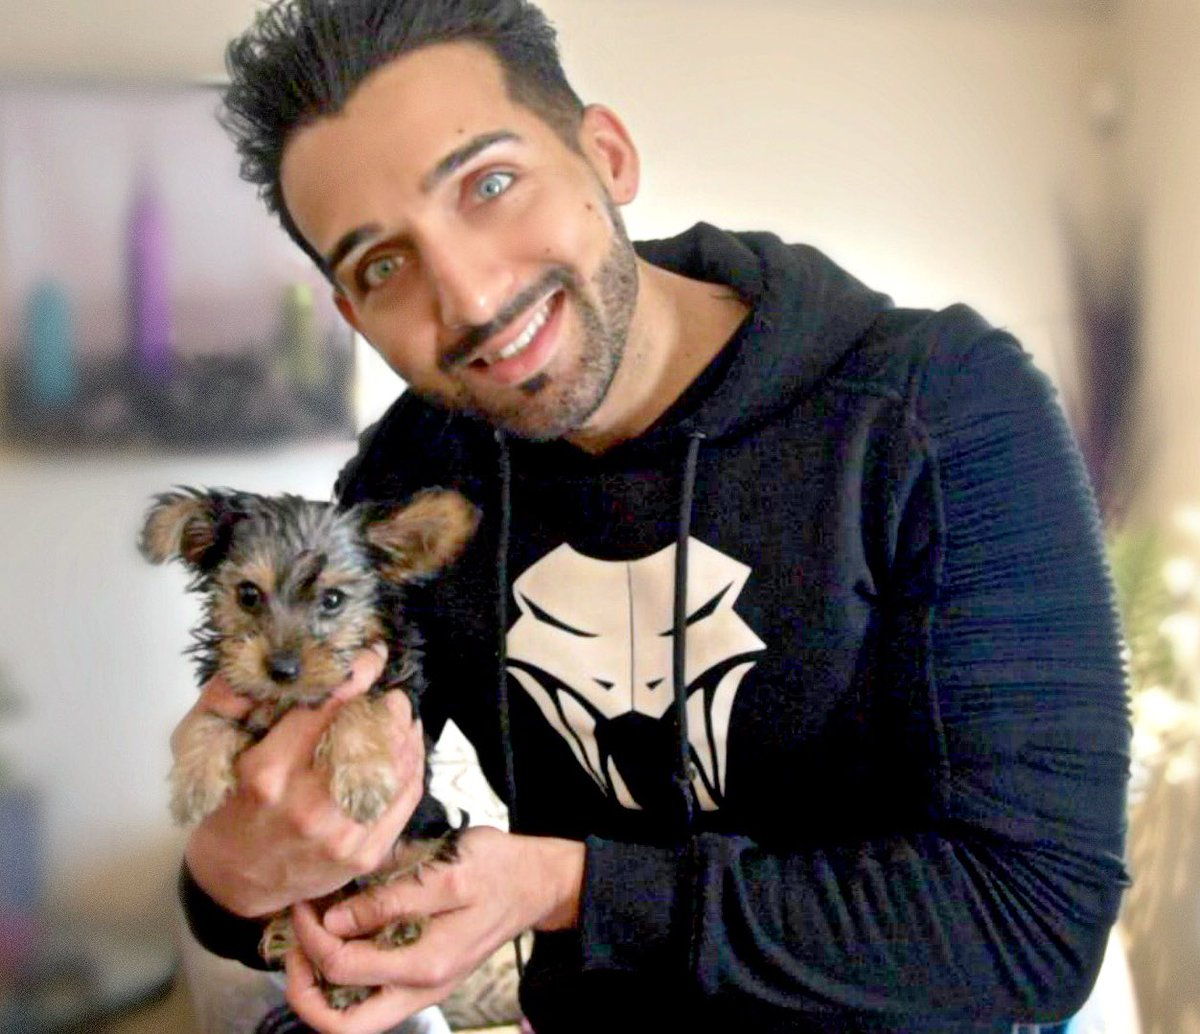 Sham Idrees On Twitter Lets All Welcome Rocky To Teamrebel